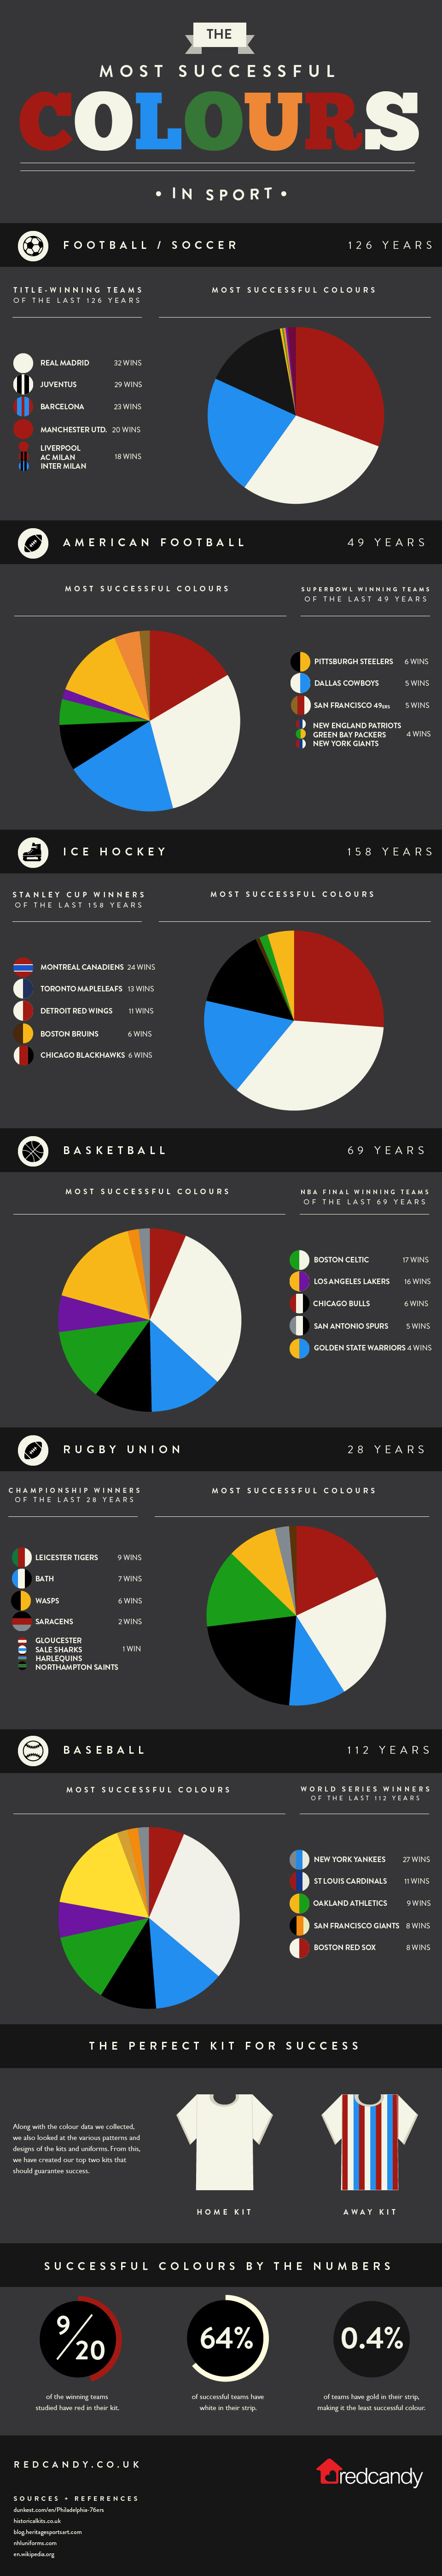 The Most Successful Colours in Sport